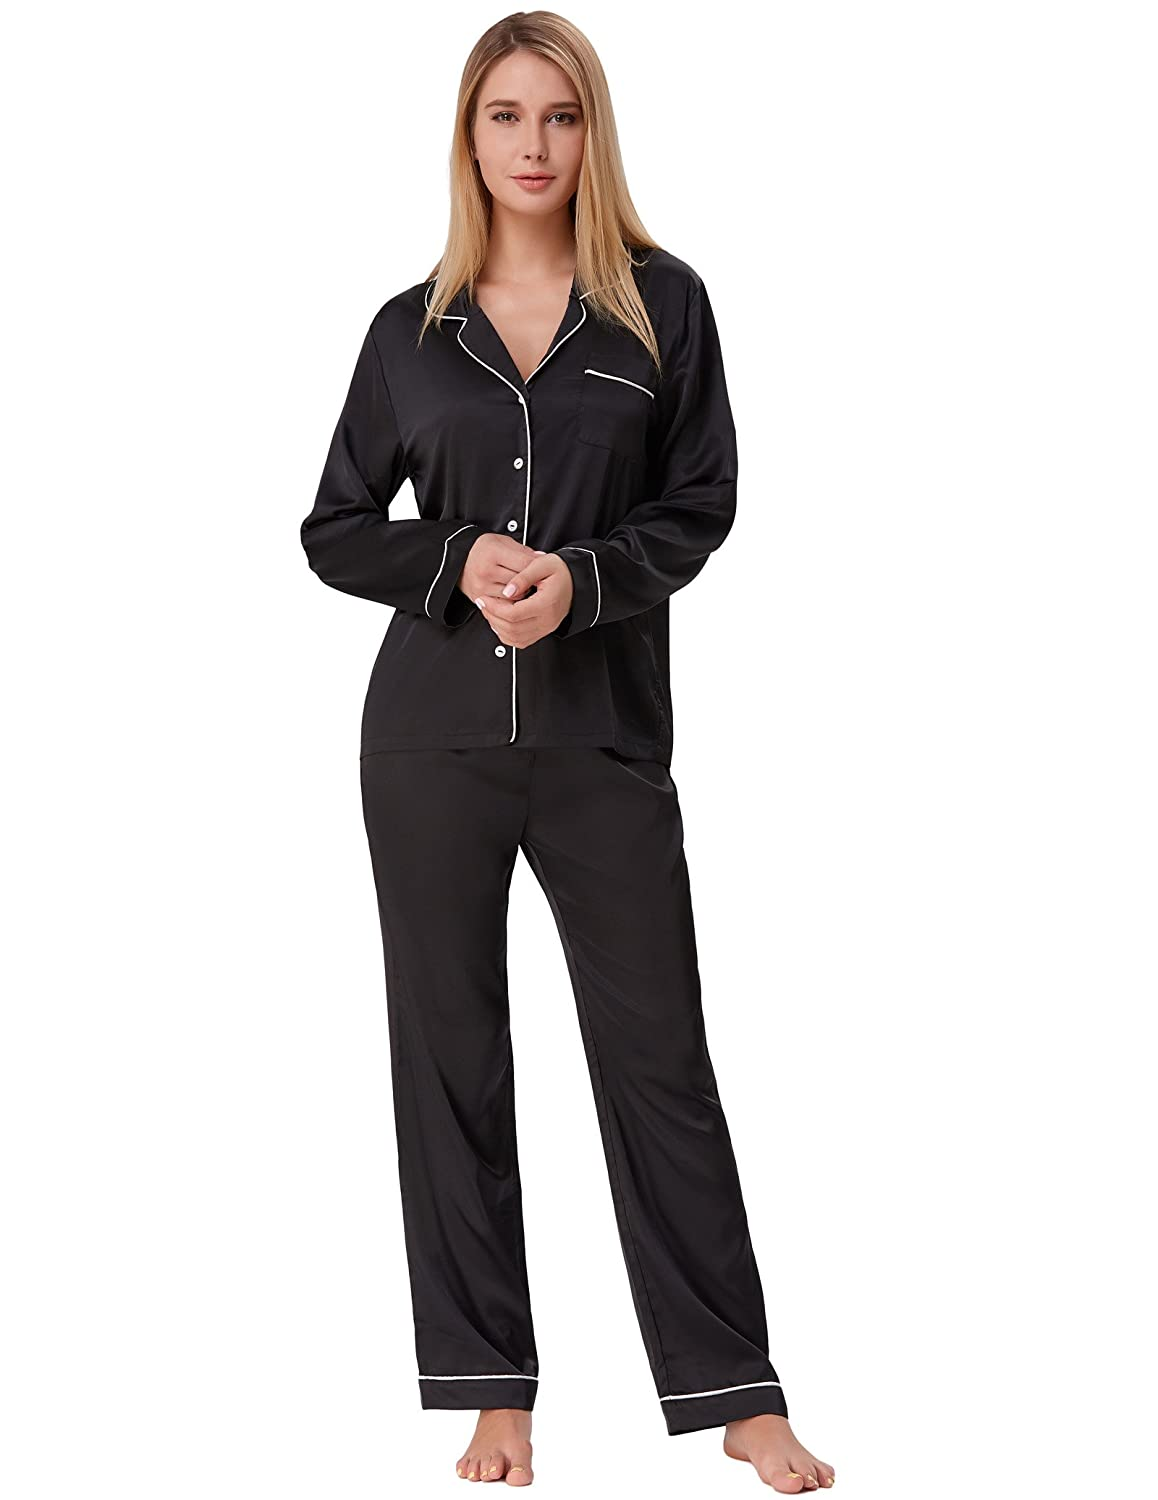 6831707d8 Silk Nightwear for Women Button Down Long Pajamas with Pants Black Size L  ZE52-1 at Amazon Women's Clothing store: